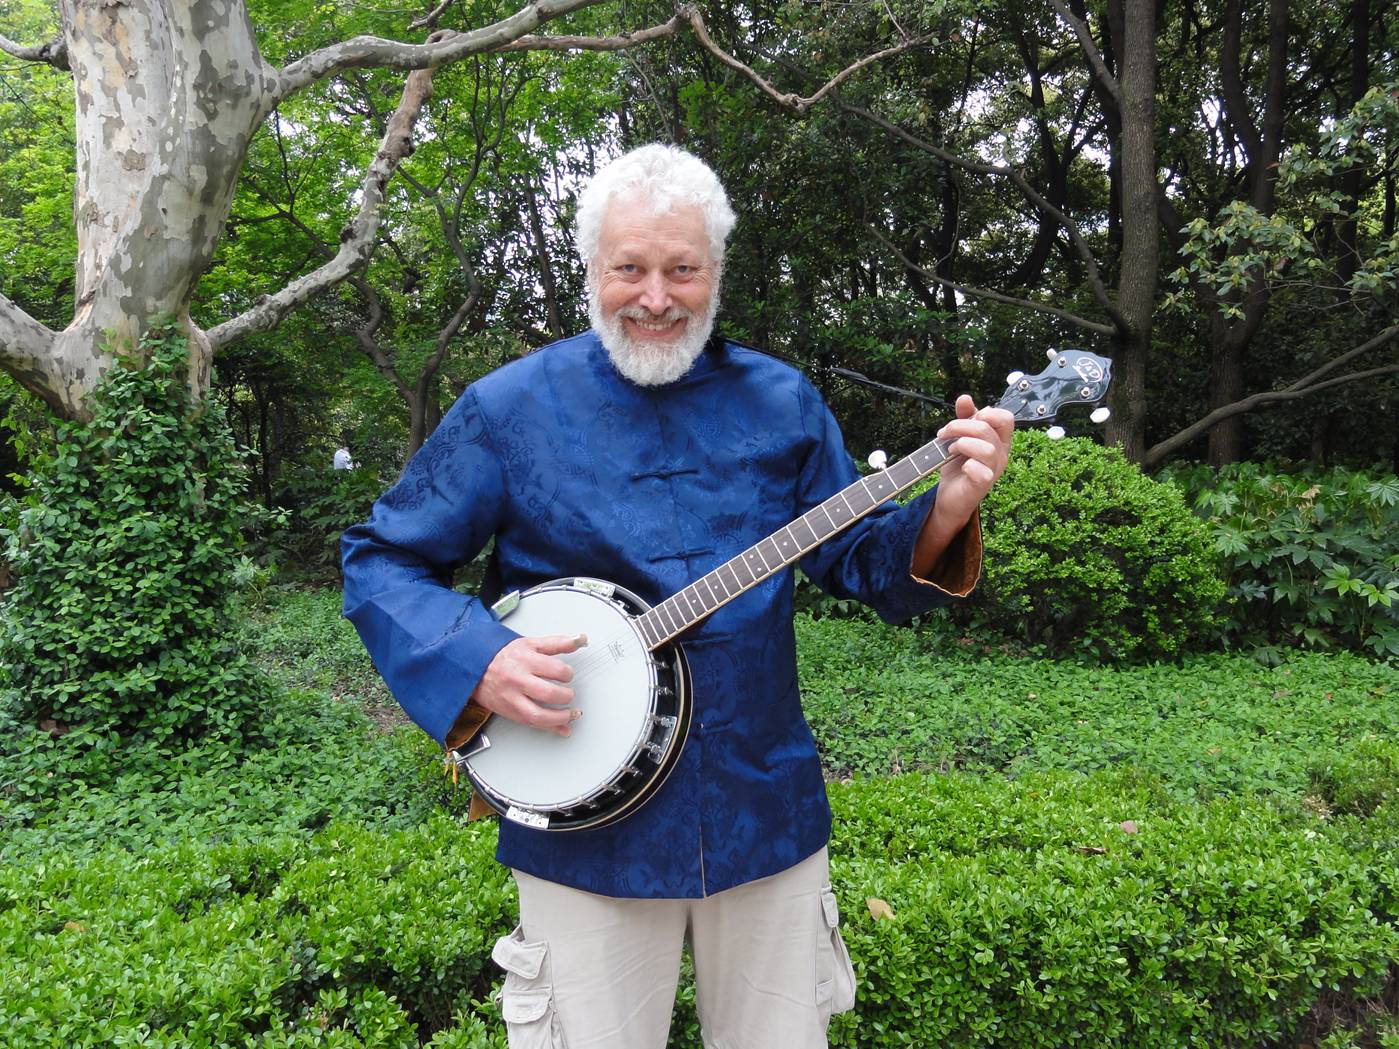 Picture:  Me and my new banjo.  People's Square Park in Shanghai is beautiful once you get away from the crowds.